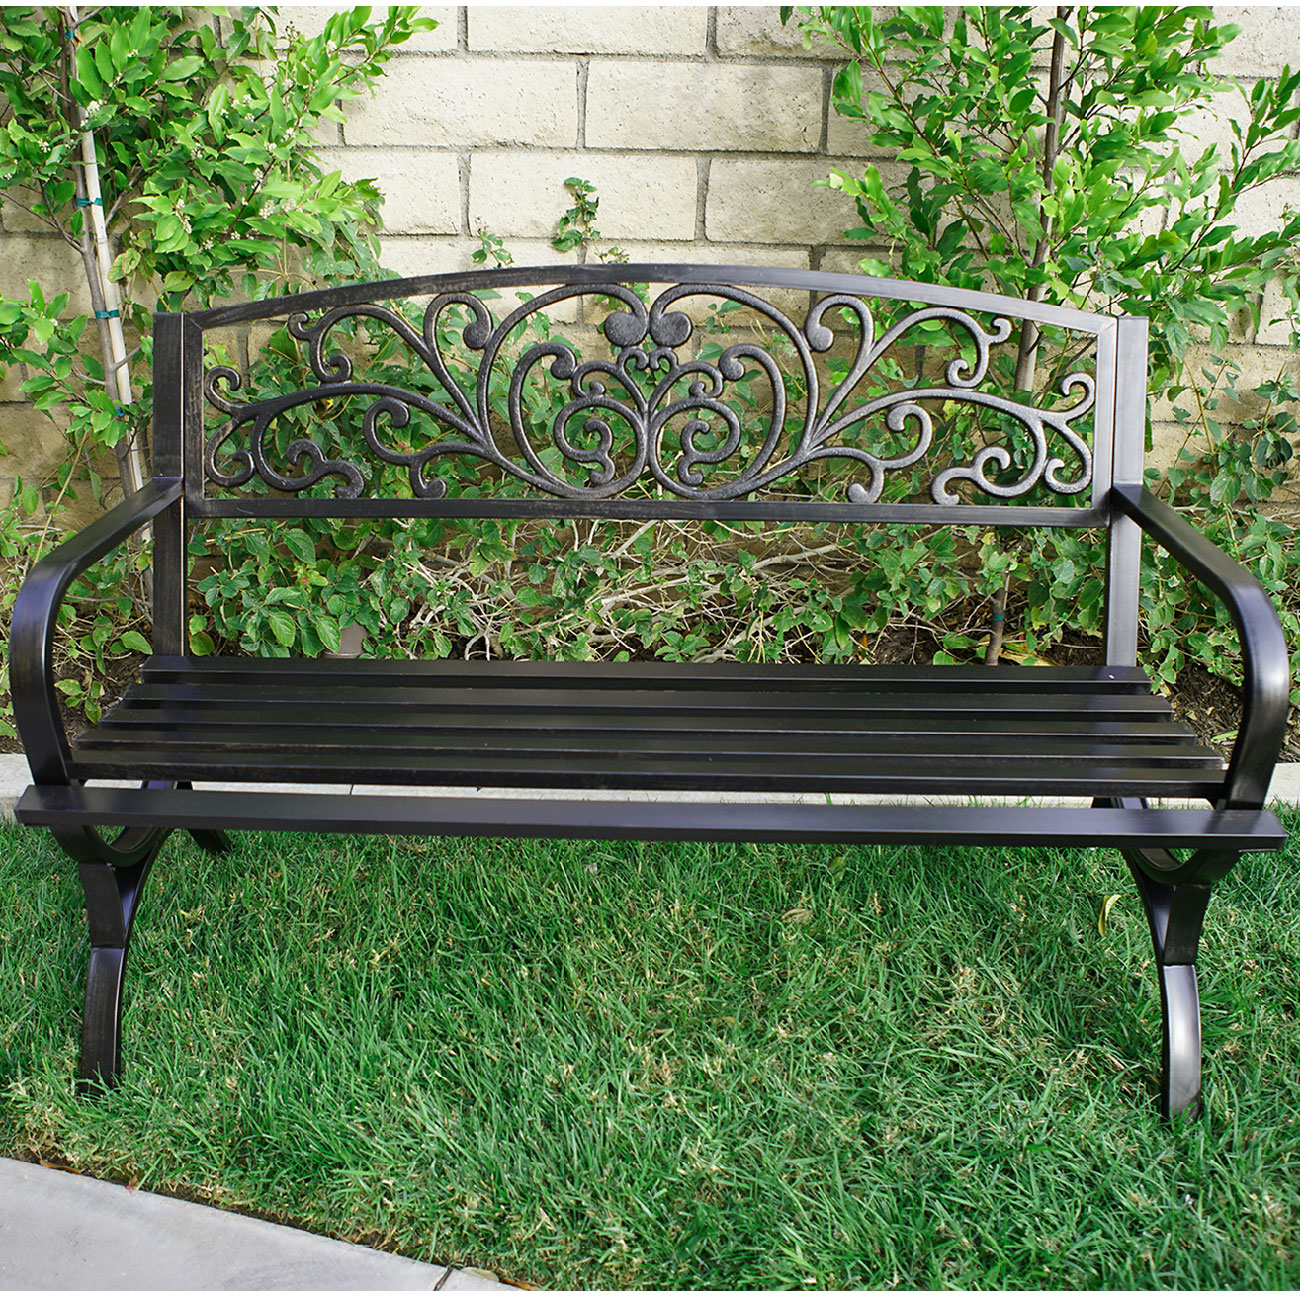 Outdoor metal bench garden patio furniture seat yard porch park backyard d cor Decorative benches